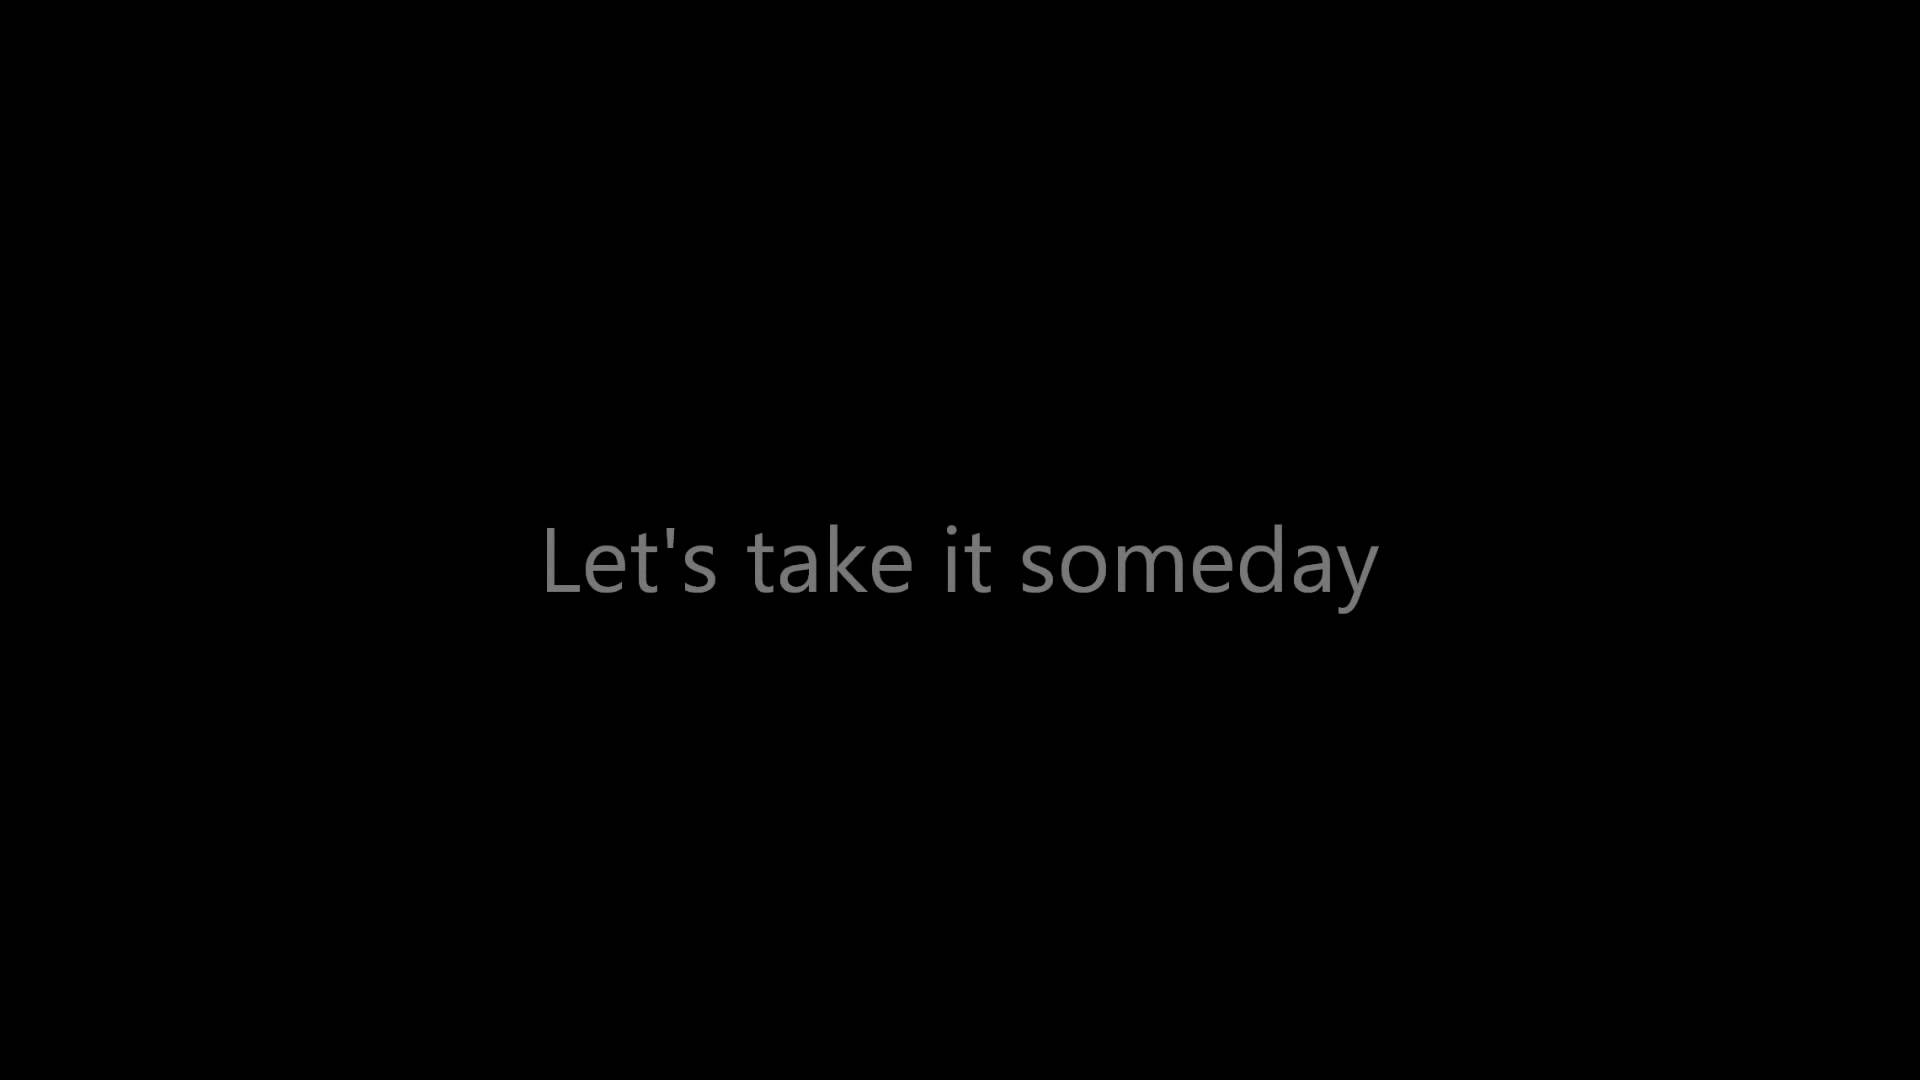 ONE OK ROCK Let's take it someday 【歌詞付き】 FULL - YouTube